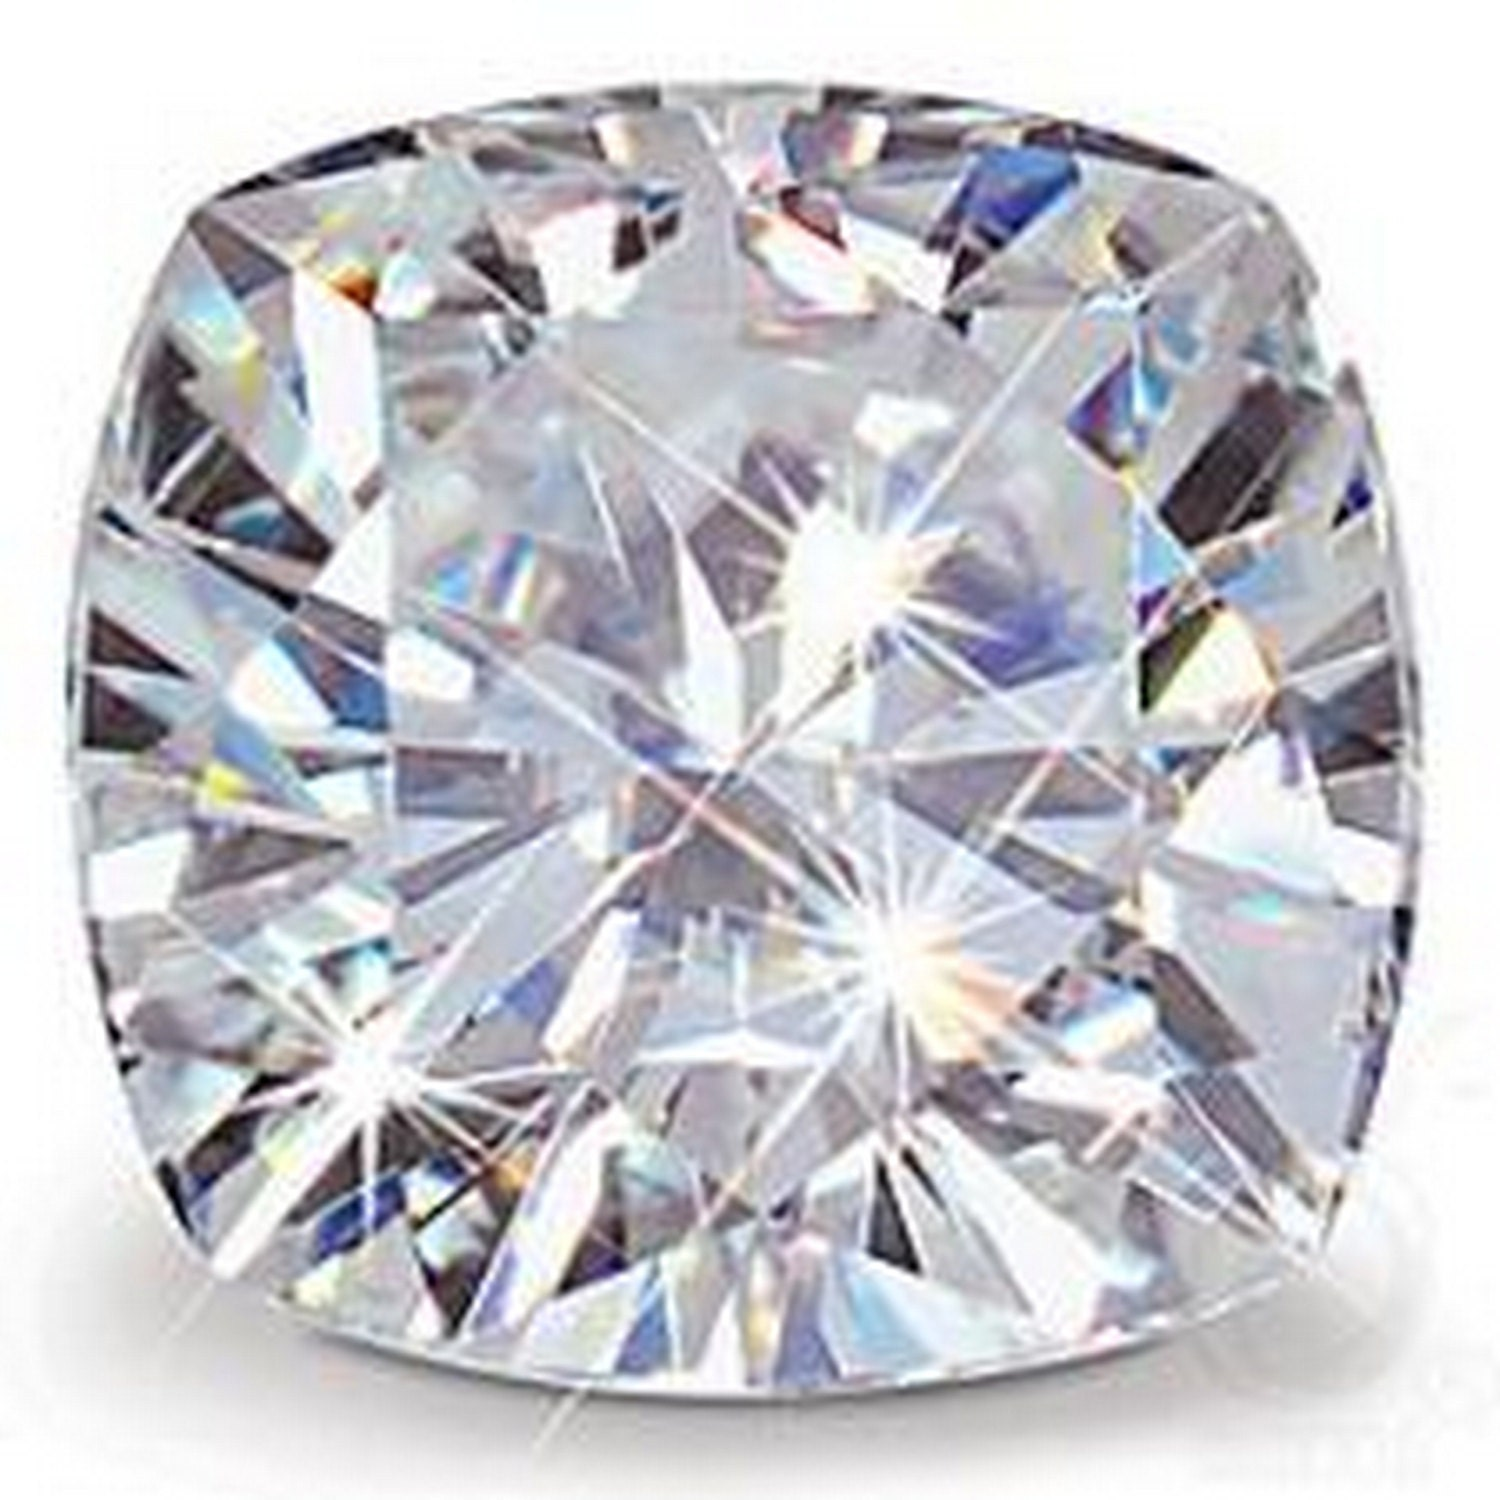 rough wholesale moissanite one gemstone product price carat loose wuzhou processing per detail diamond synthetic forever